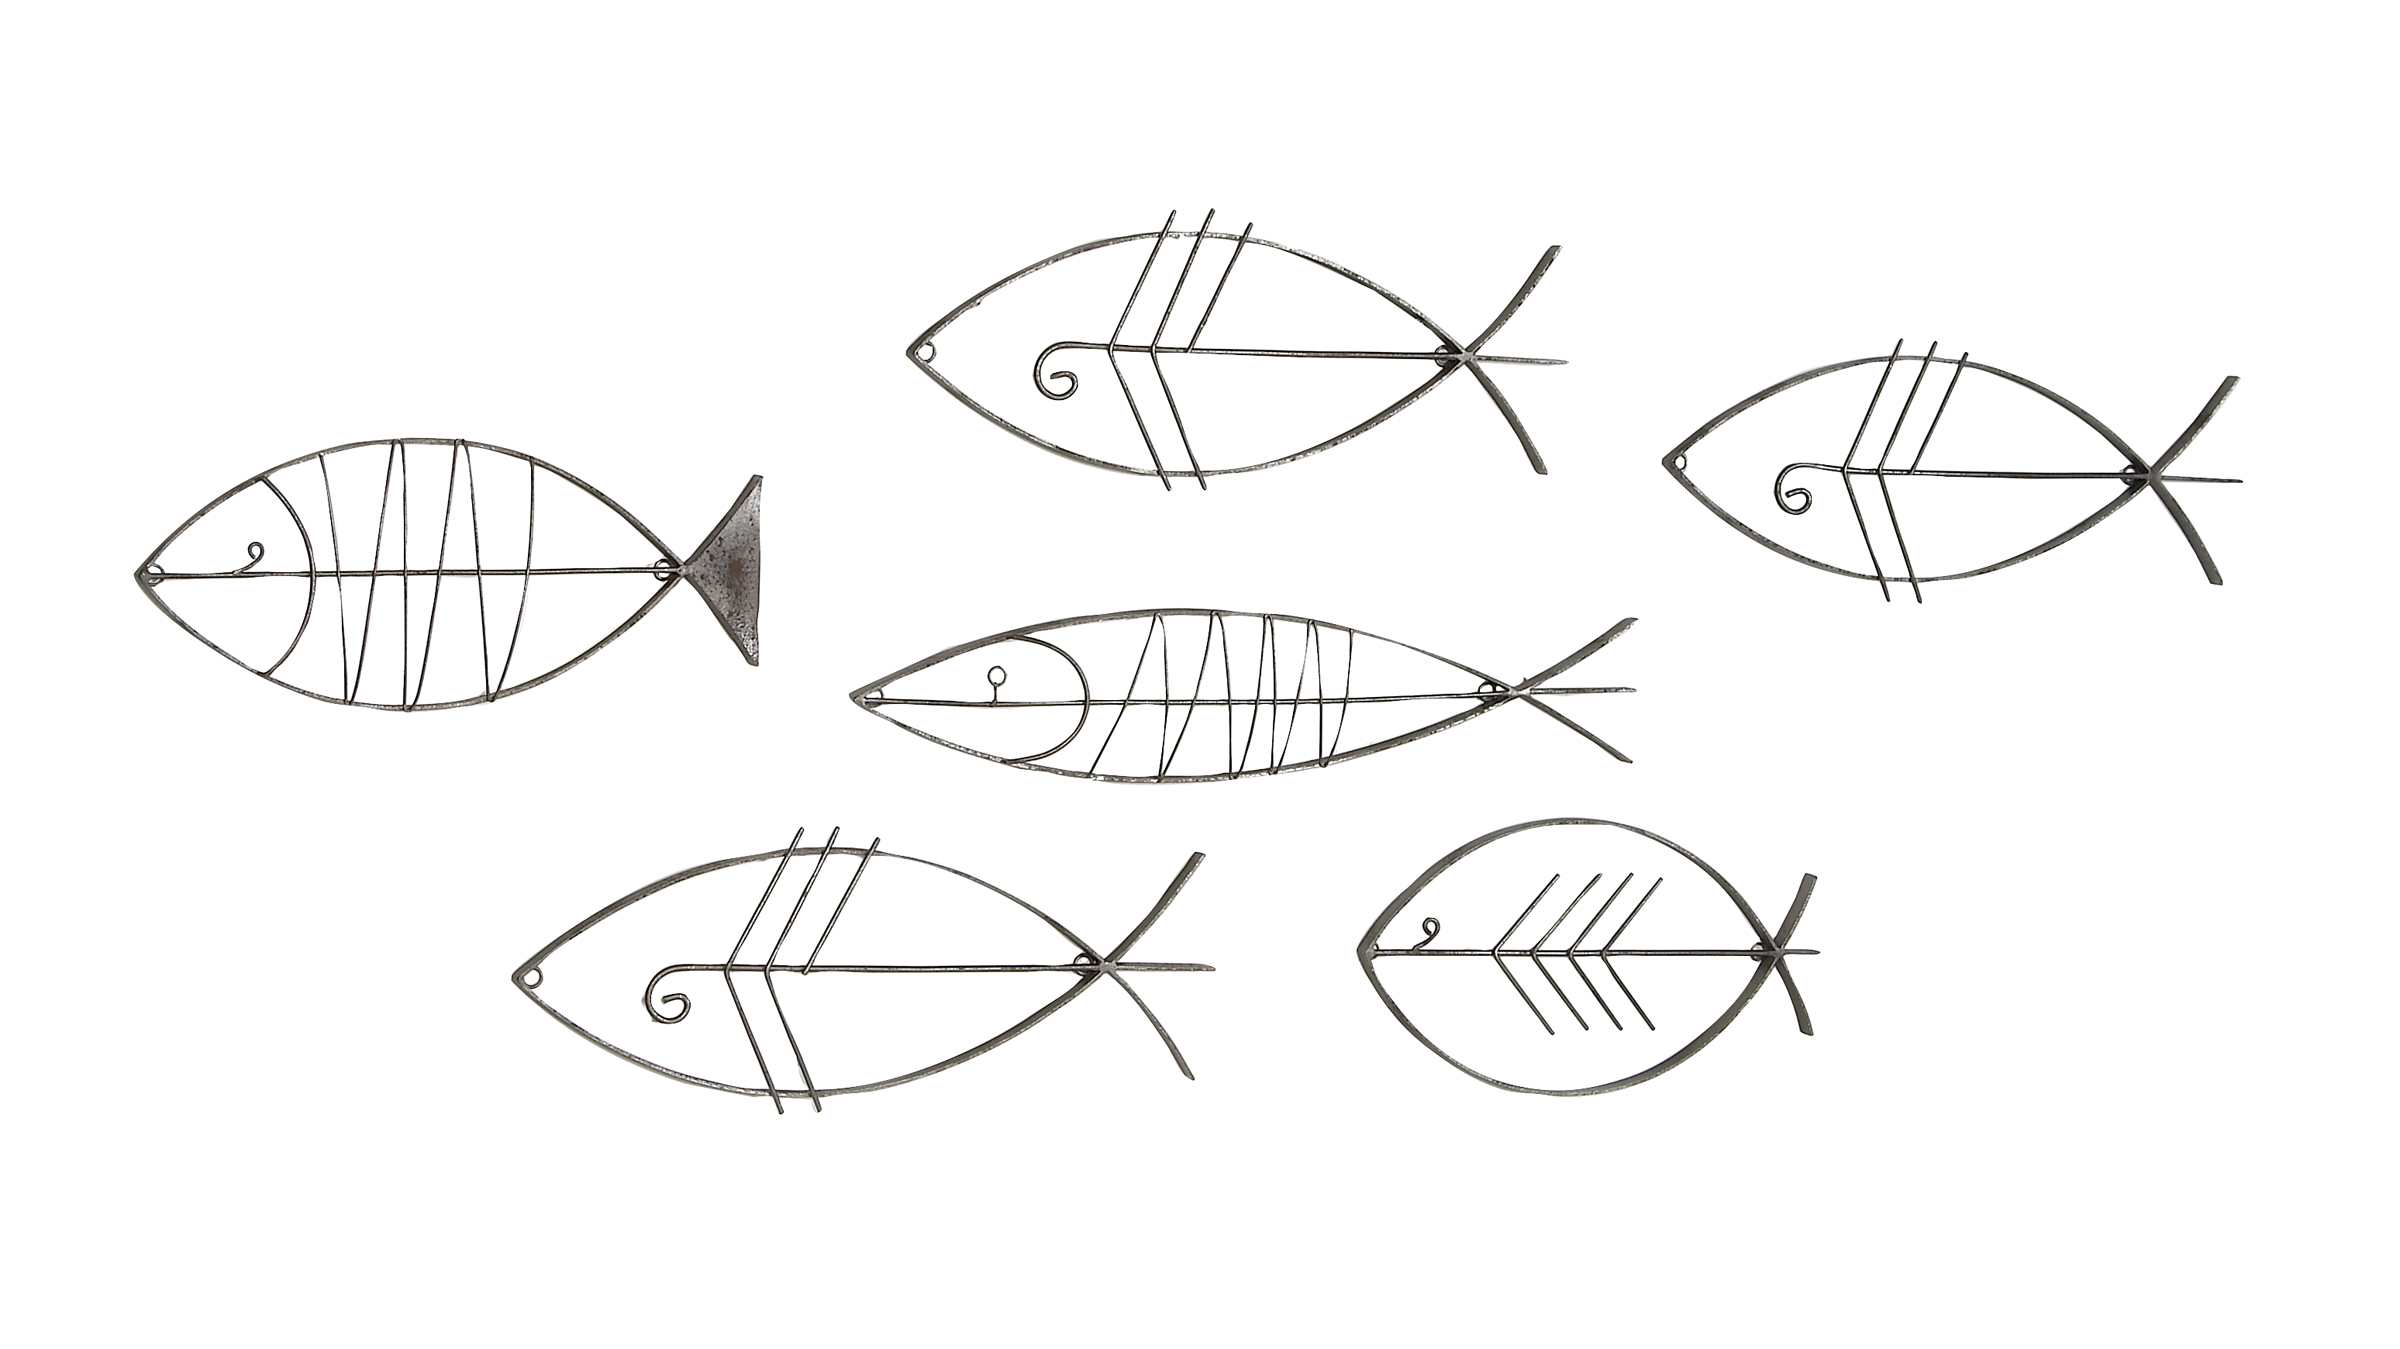 Current Decmode Coastal Black Metal Fish Wall Decor – Set Of 6 – Walmart Intended For Coastal Metal Fish Wall Decor (View 16 of 20)